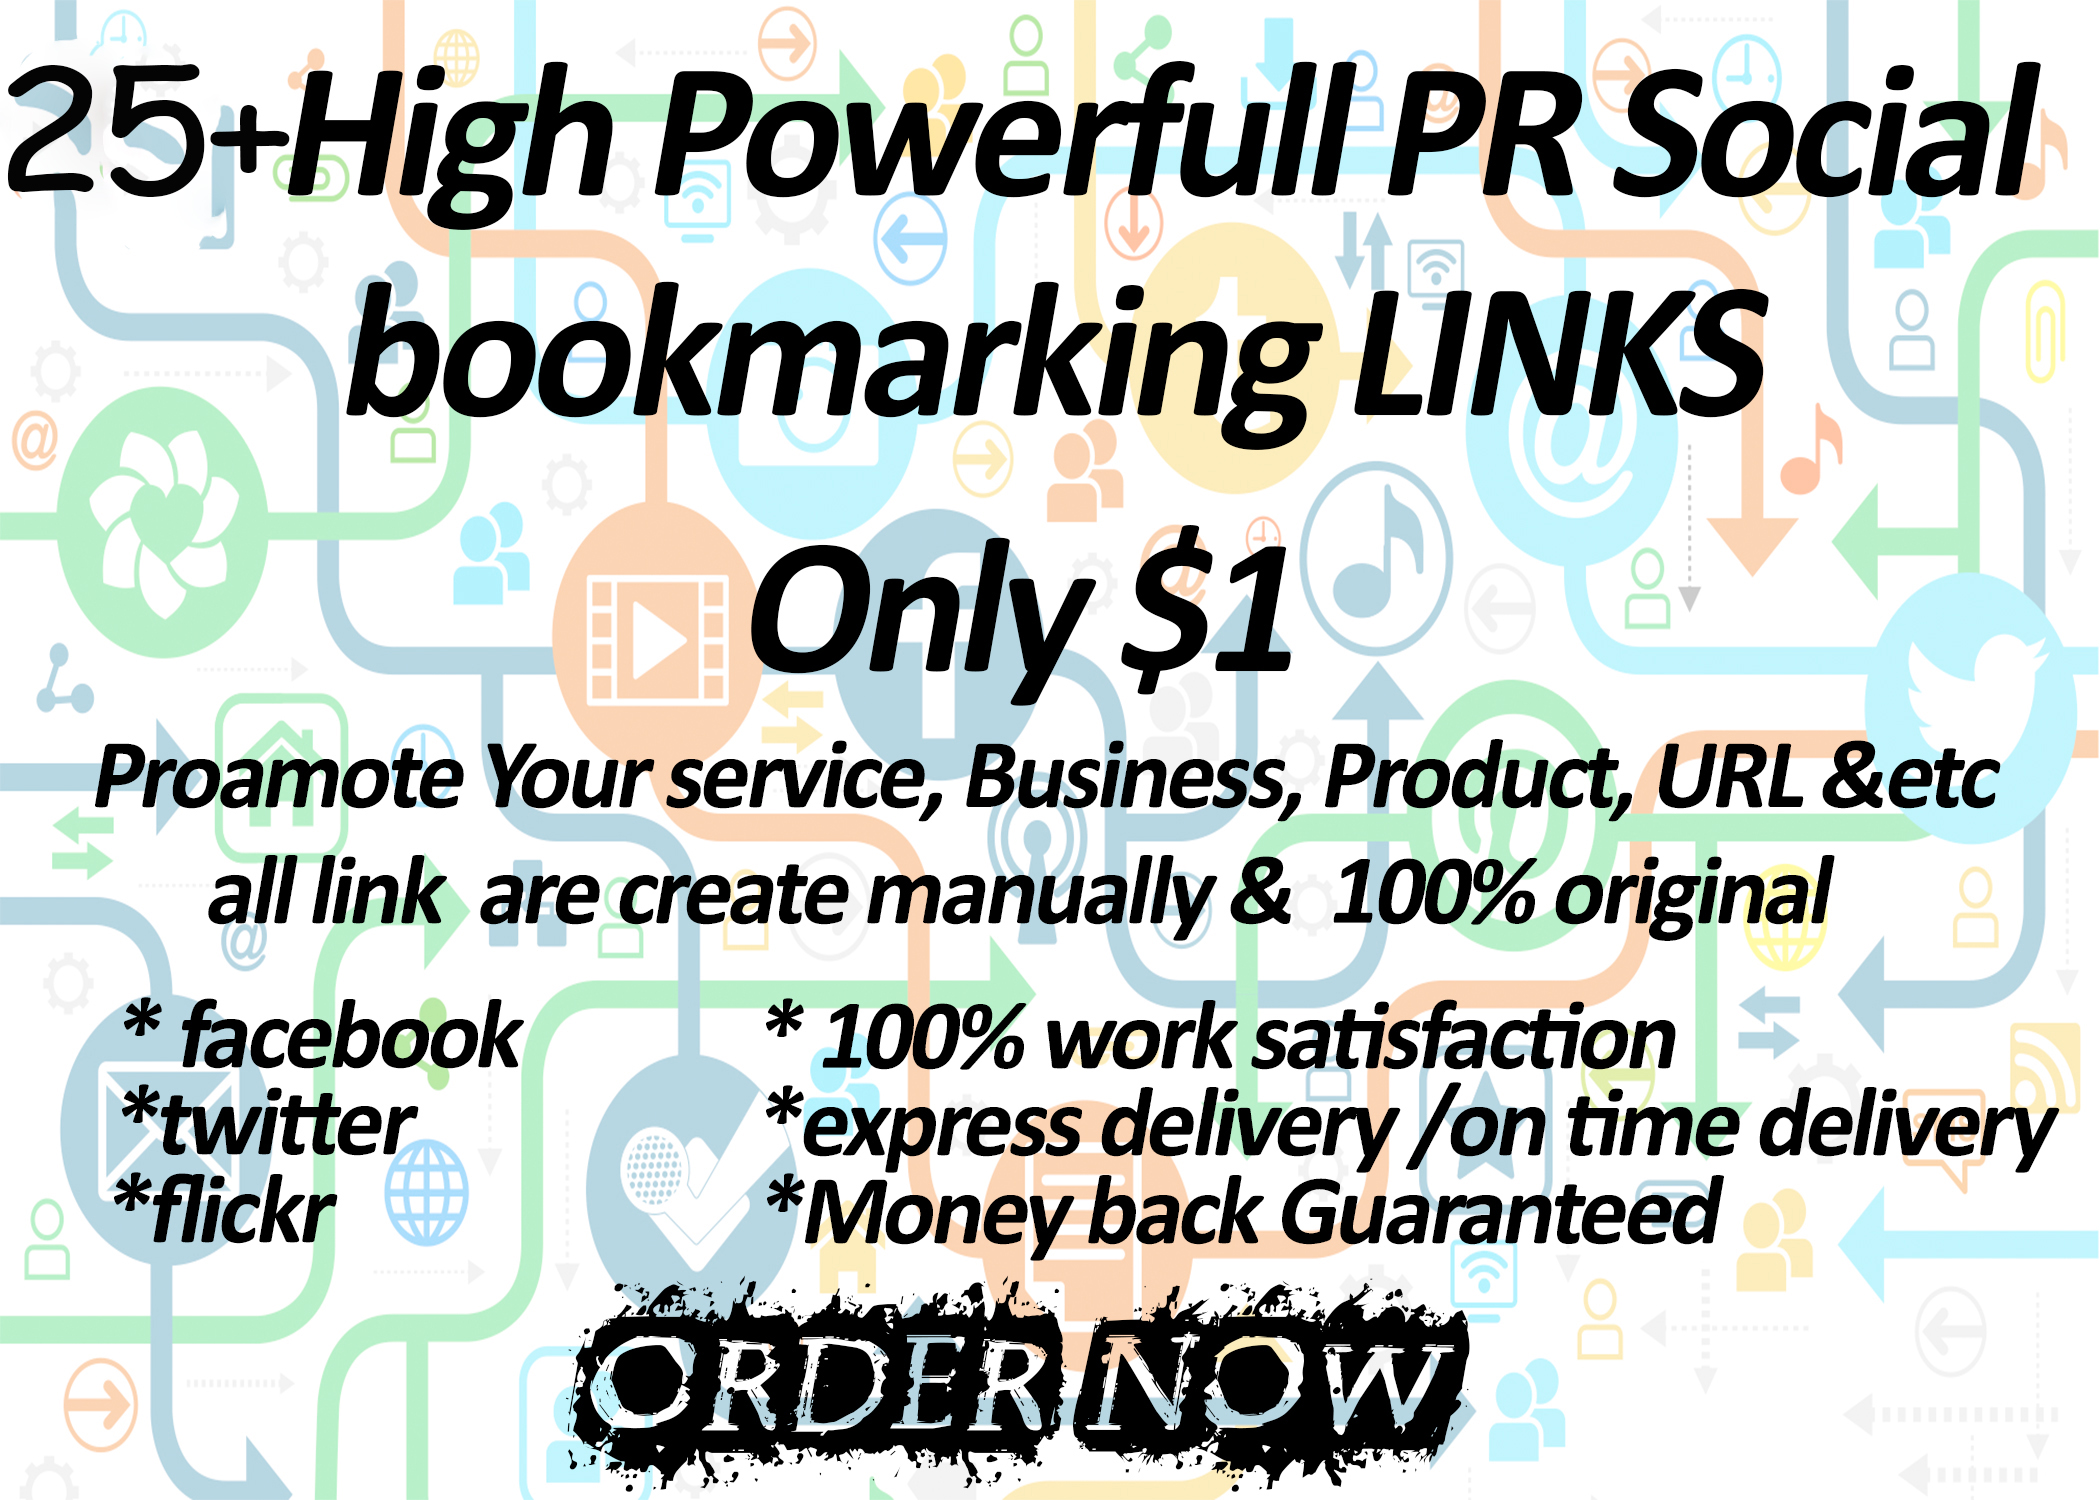 I give you 25+ High Powerfull PR Social bookmarking L...